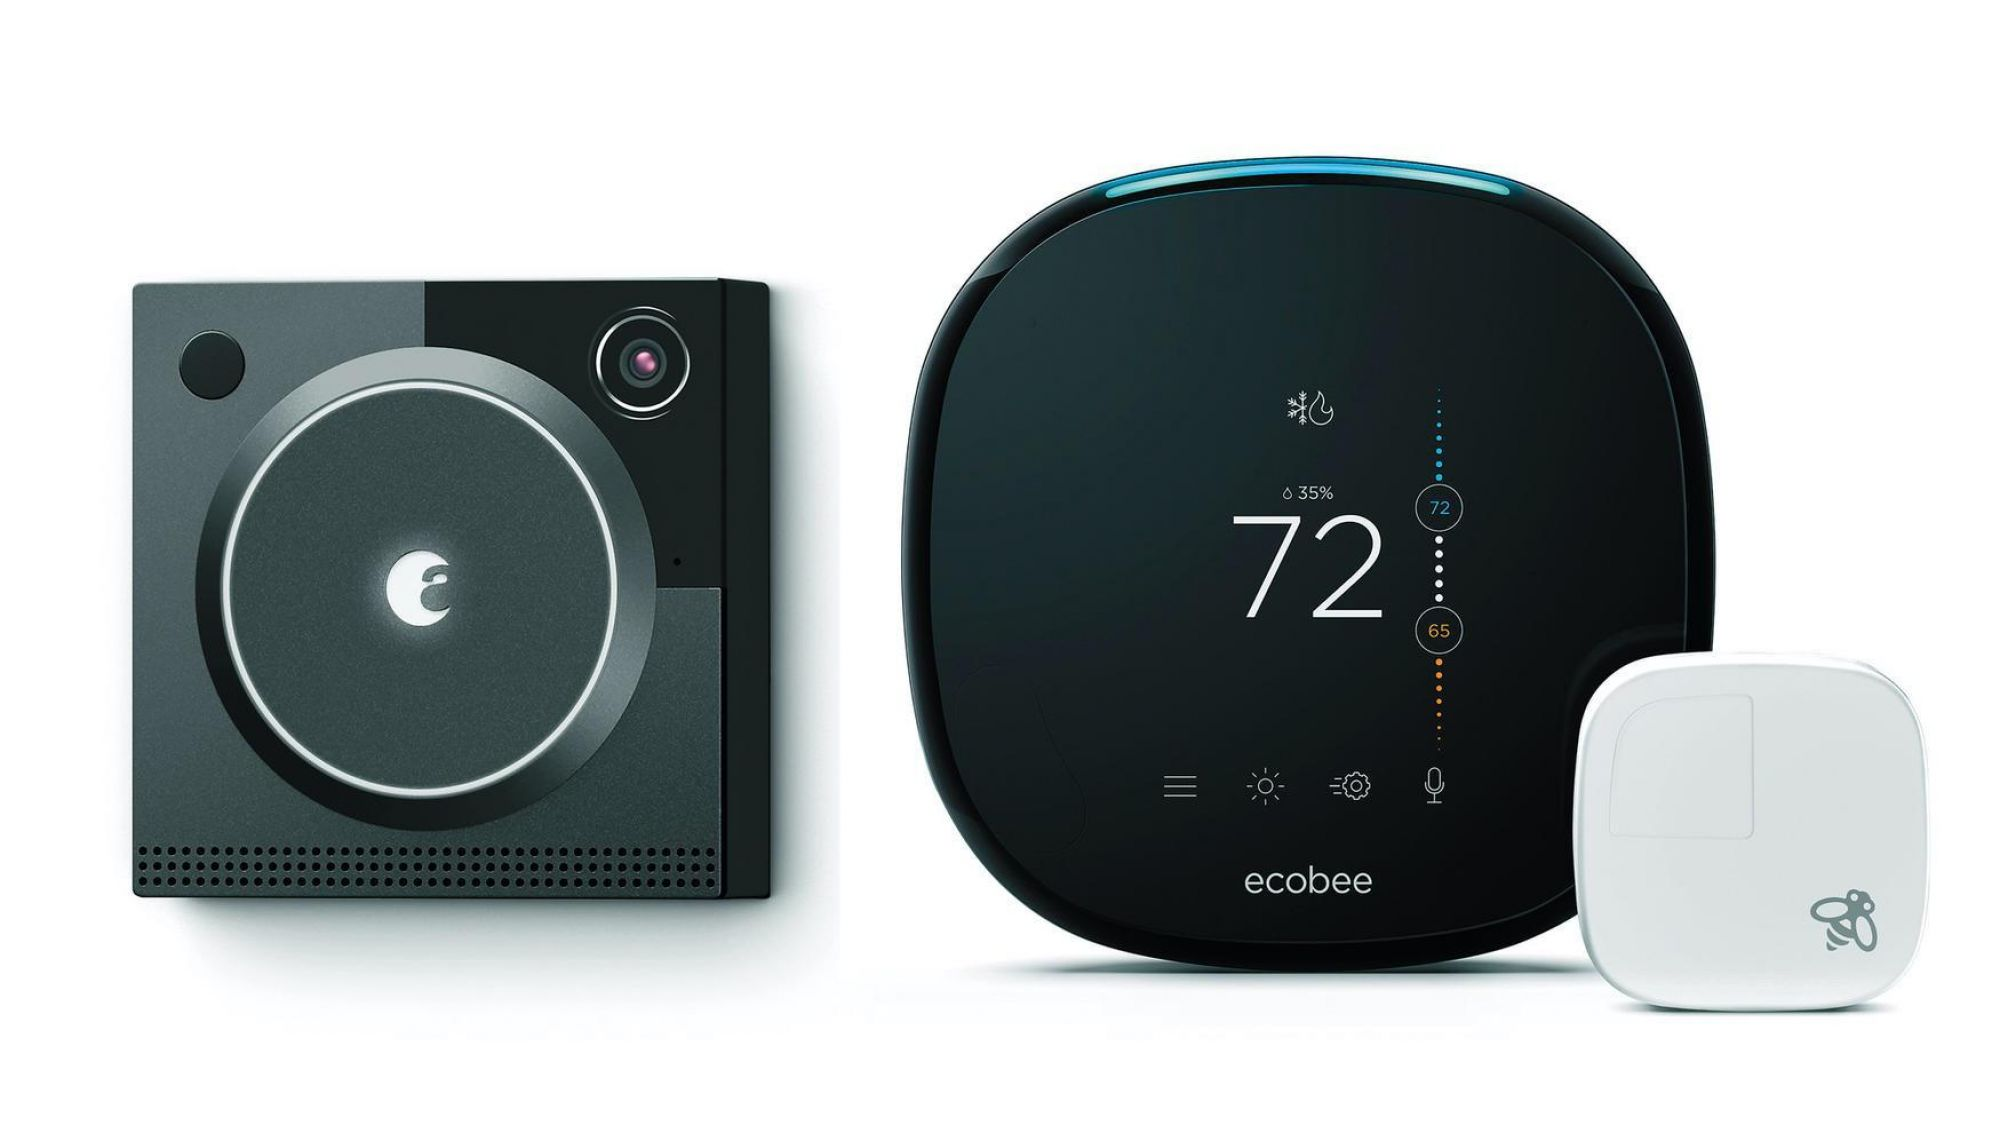 New smart tech devices can be pieced together into a complete home tech system. Some options with excellent reviews and great appeal include ecobee4 Smart Thermostat with Built-In Alexa and August's Cam Pro Video Doorbell (Images courtesy of Amazon).